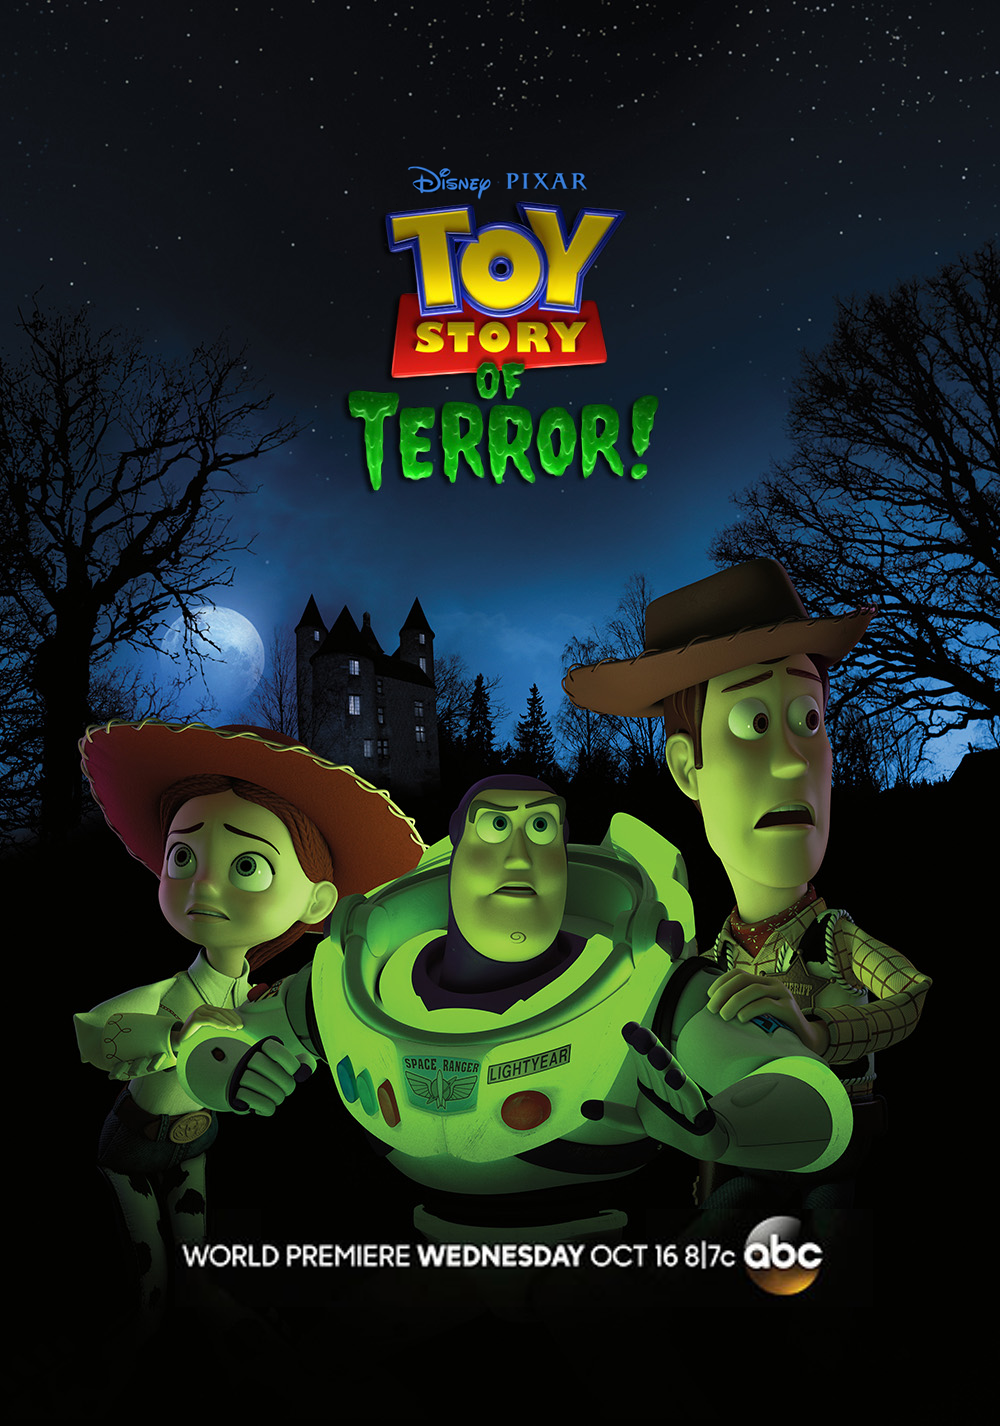 toy-story-of-terror-whole-poster.png